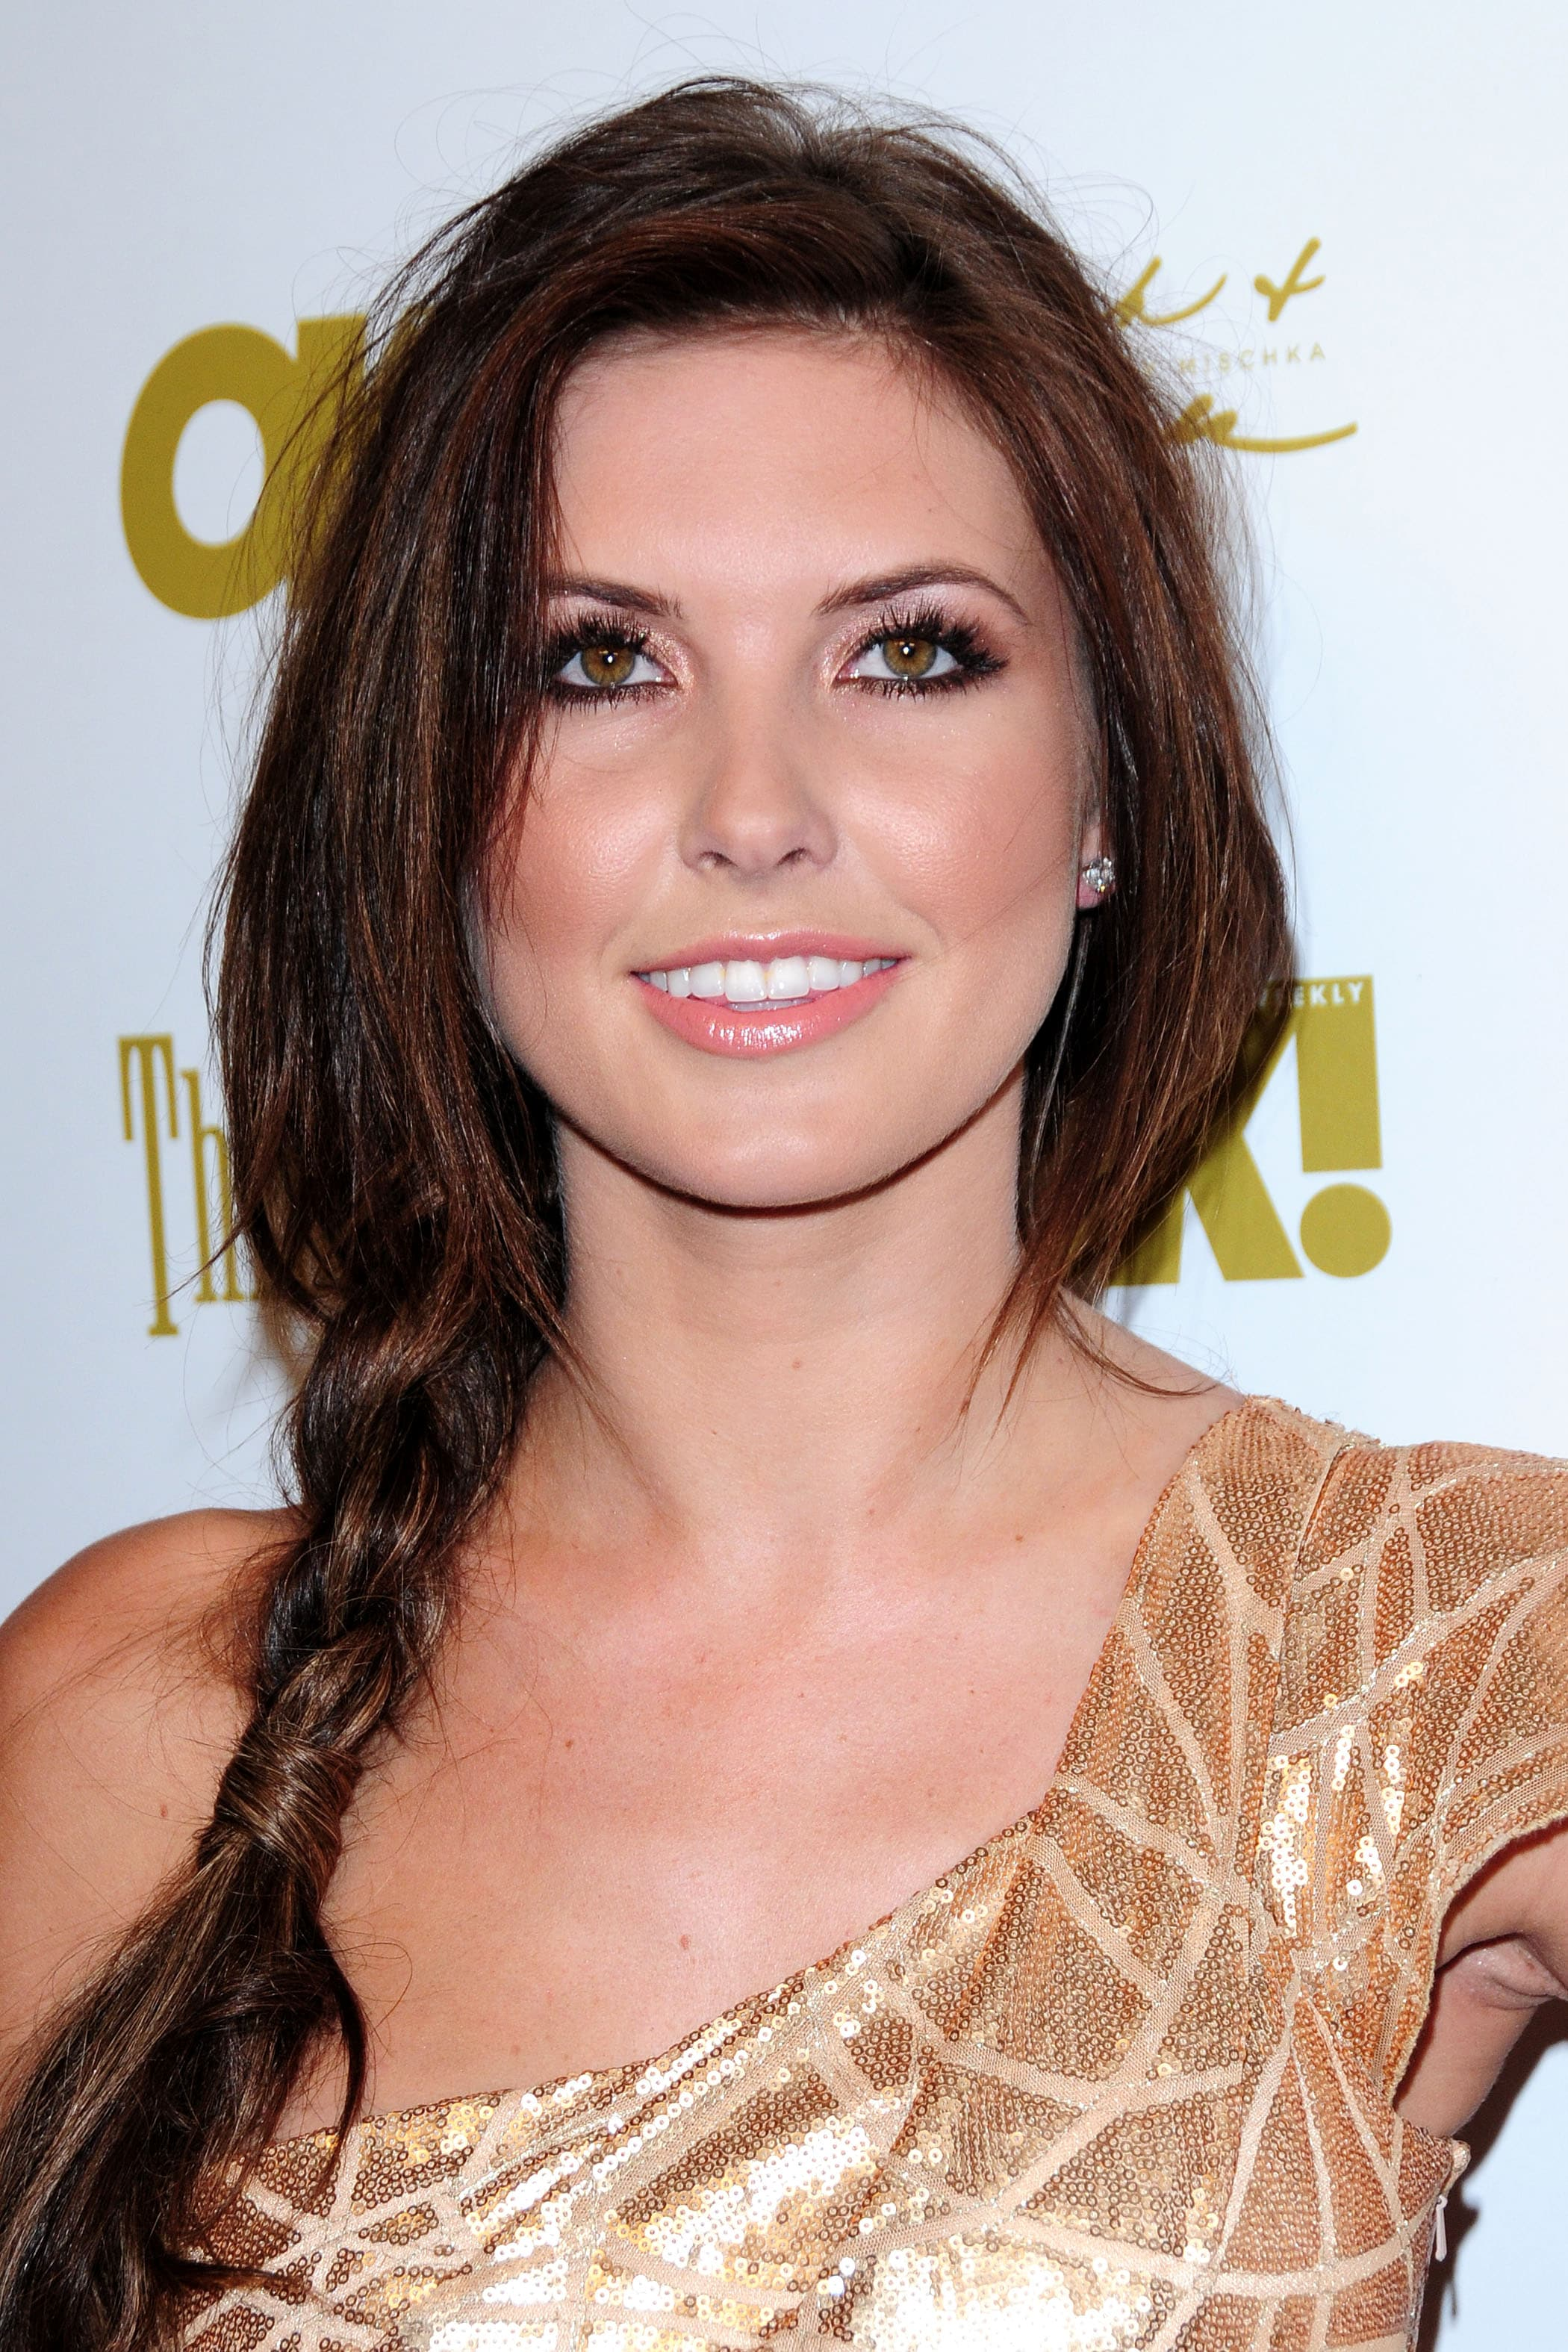 Audrina Patridge from MTV's The Hills on the red carpet with her dark brunette hair in a loose side braid